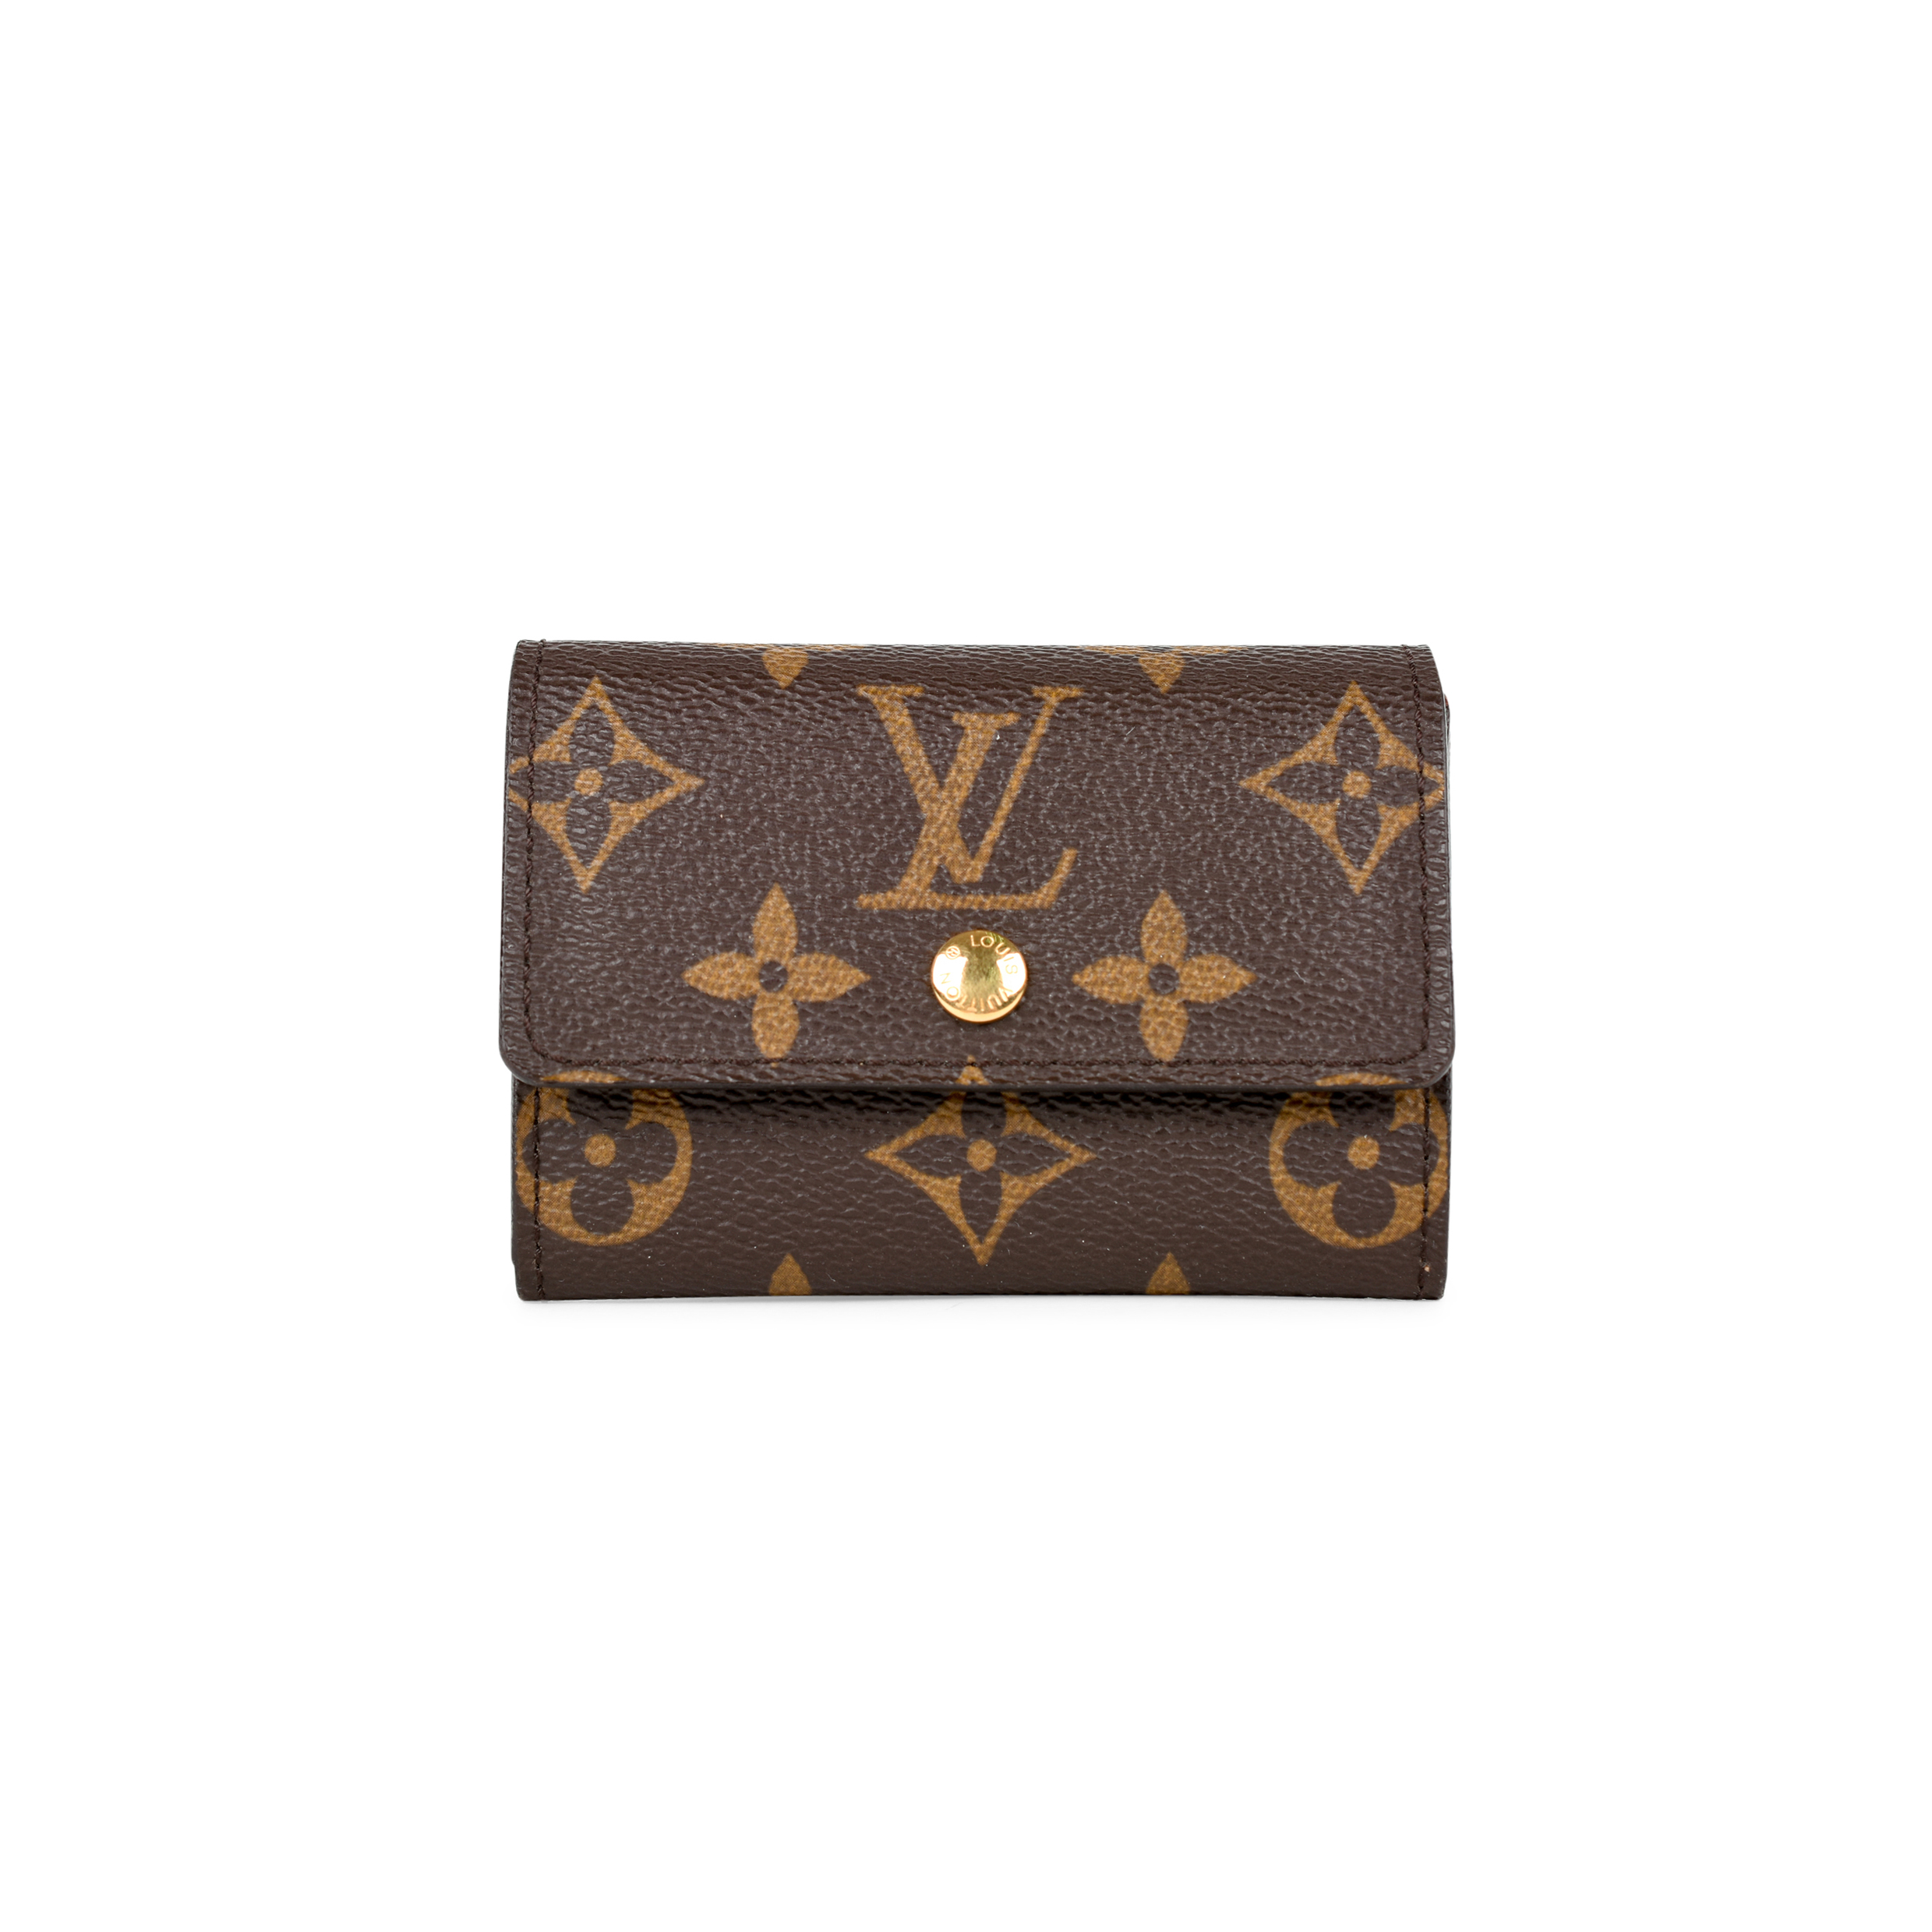 93e52c210f5 Authentic Second Hand Louis Vuitton Card Holder (PSS-375-00025 ...